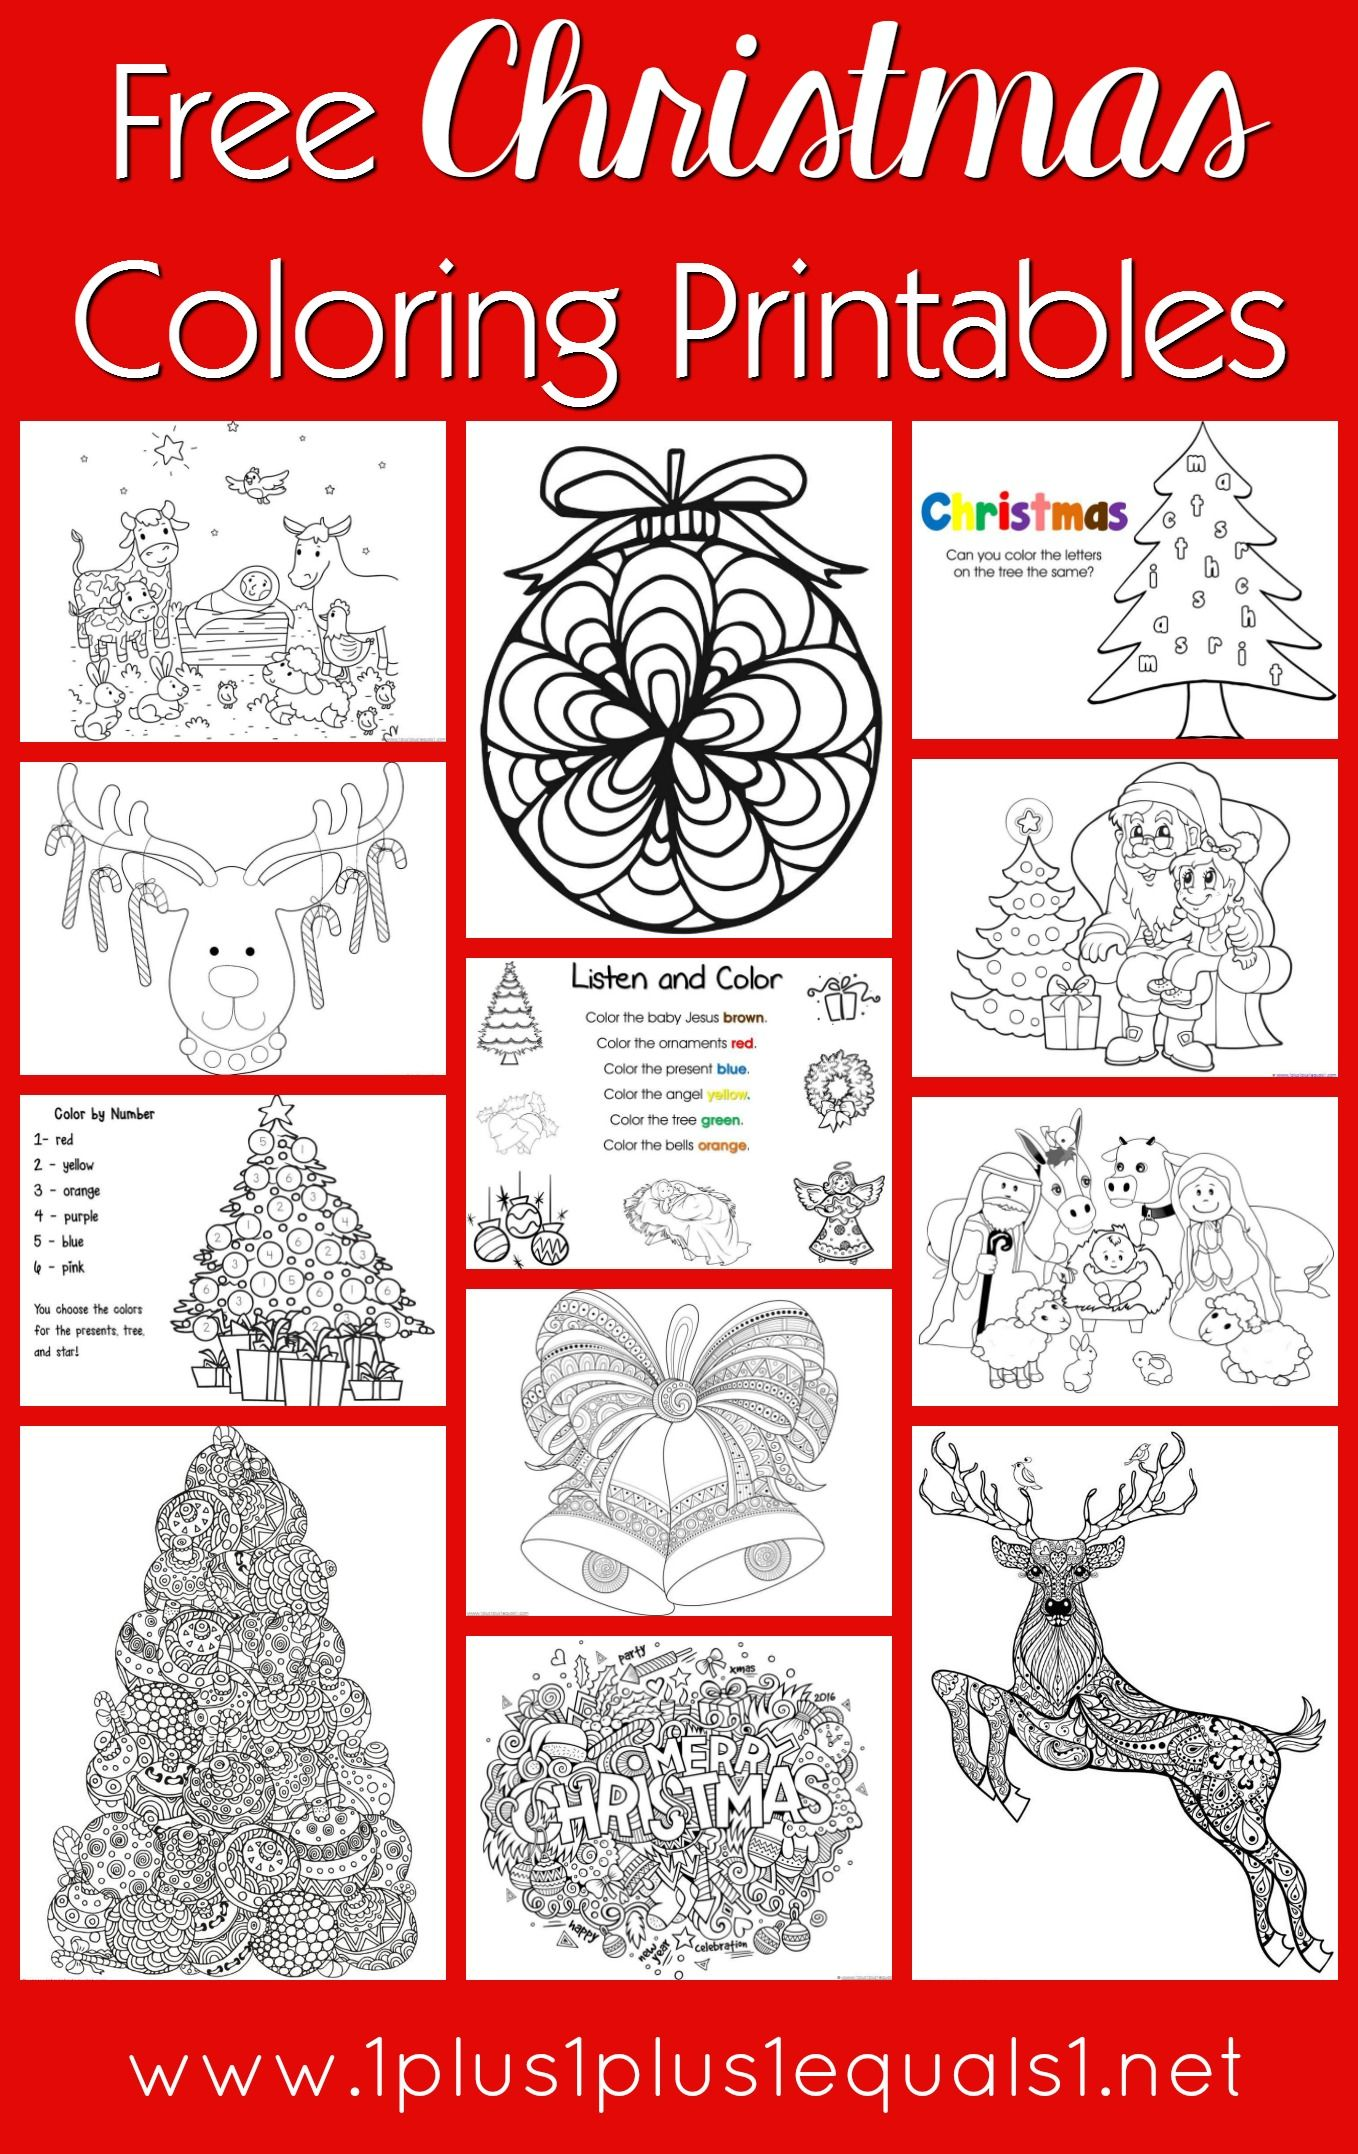 Free Christmas Coloring Pages for Kids & Adults | Pinterest